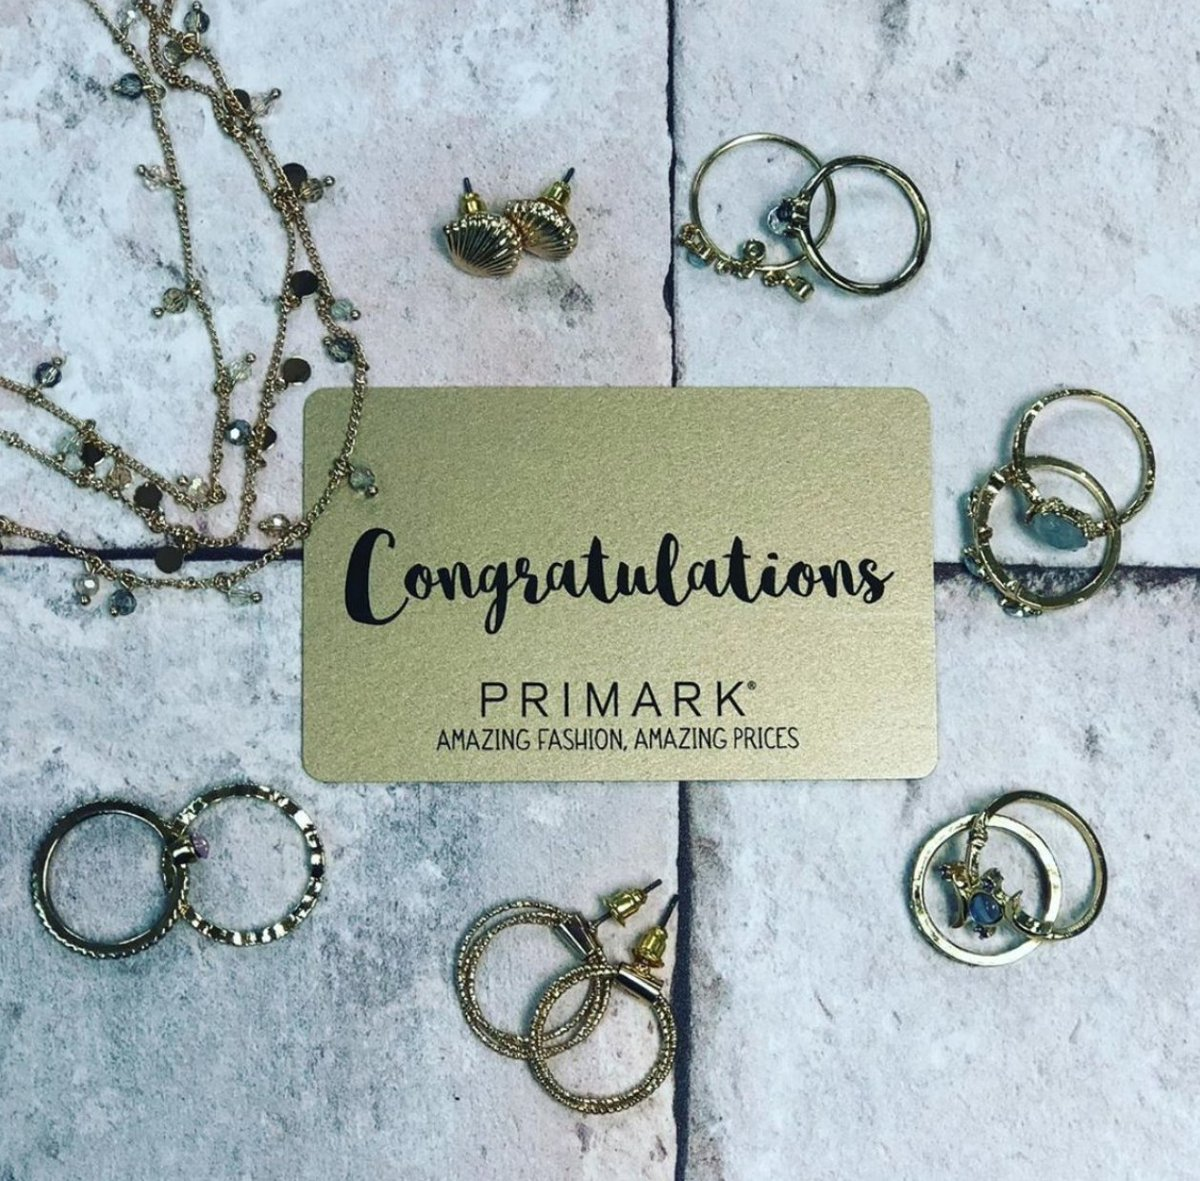 #FreebieFriday!  Feeling in need of treat but payday is still nowhere in sight? Update your wardrobe with a £75 @Primark voucher!  Follow us, like & RT to enter, ends 8am 20/01/2020.   You can also enter on Facebook & Instagram!<br>http://pic.twitter.com/txbyDZodju